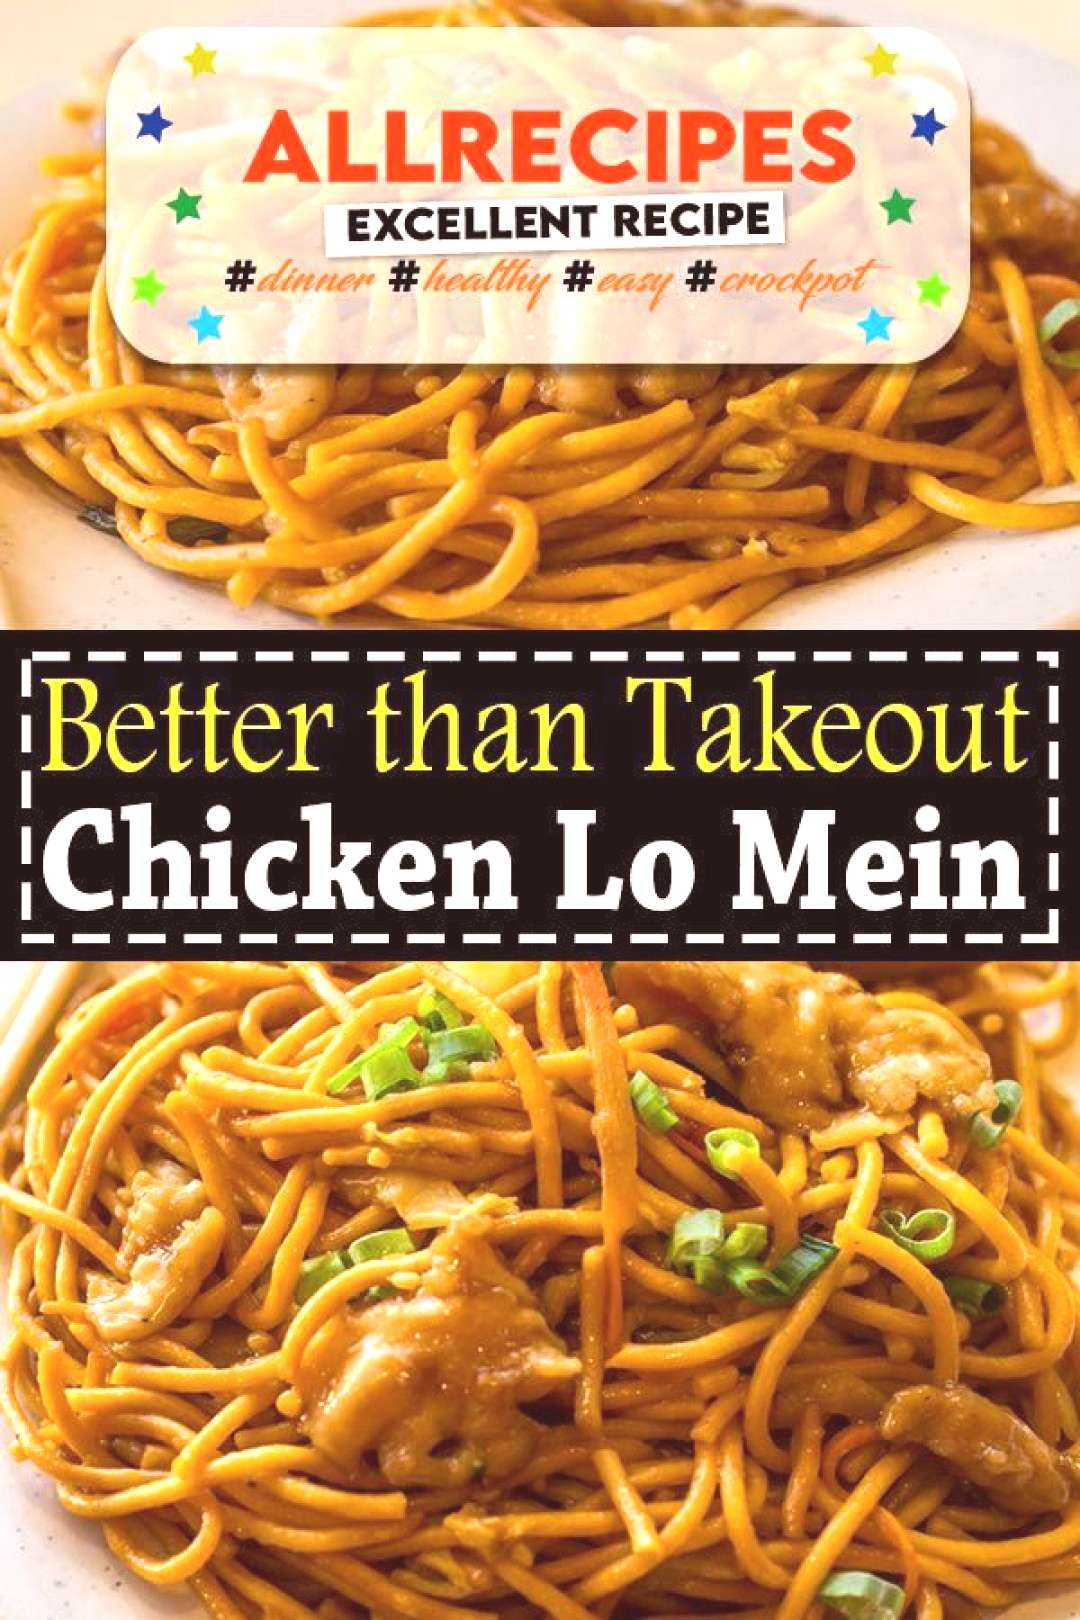 Chicken Lo Mein - - Chicken lo mein is way better than takeout. This easy Chicken Lo Mein recipe is